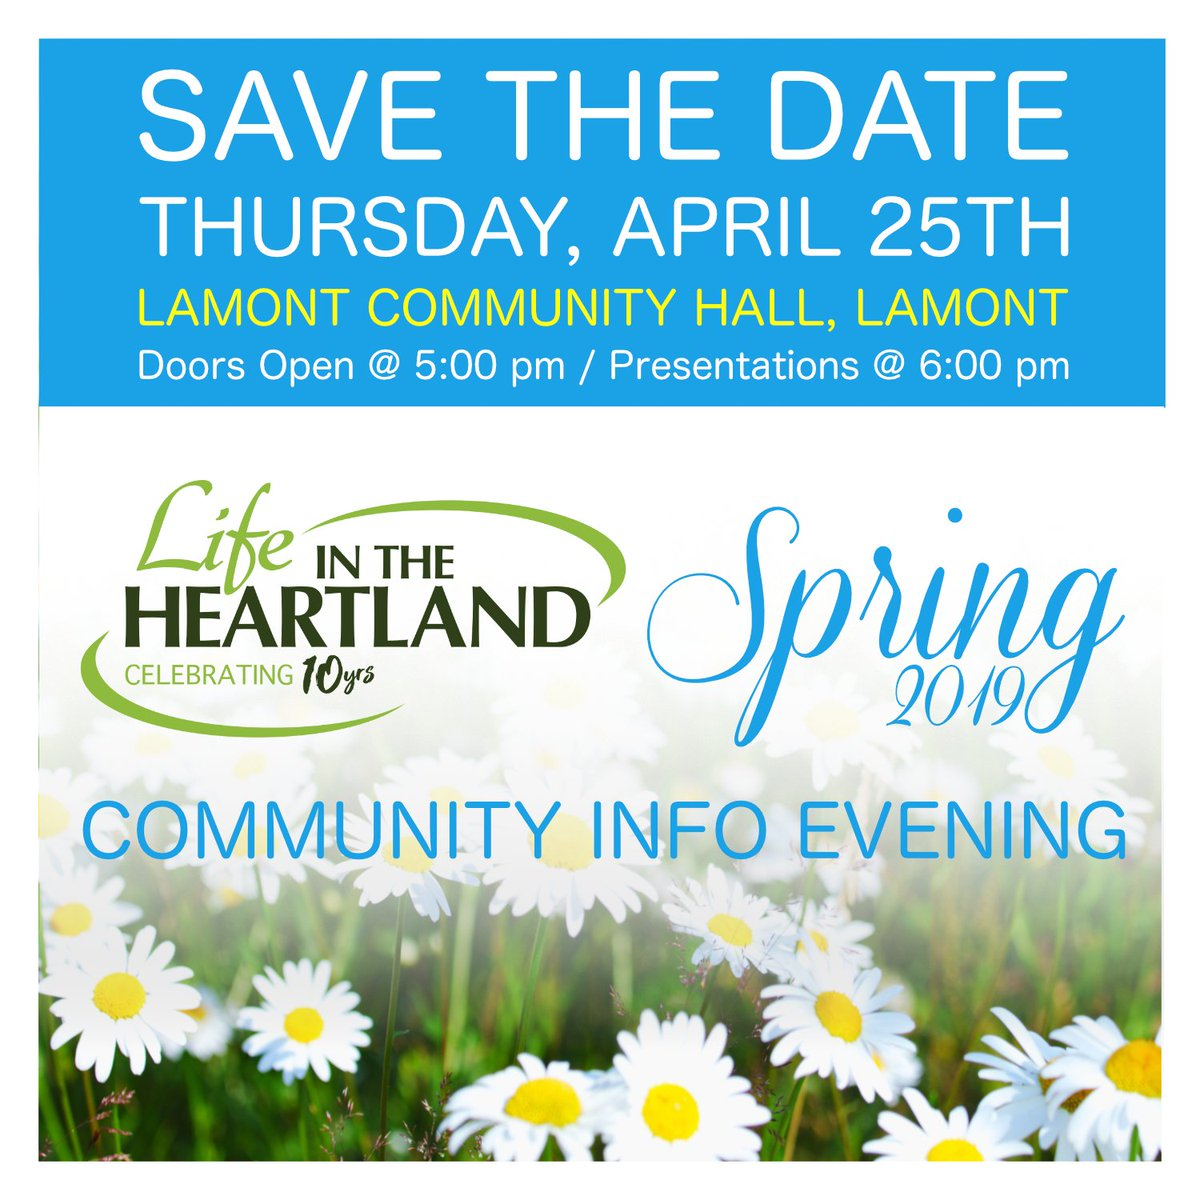 Save the Date - Community Info Evening